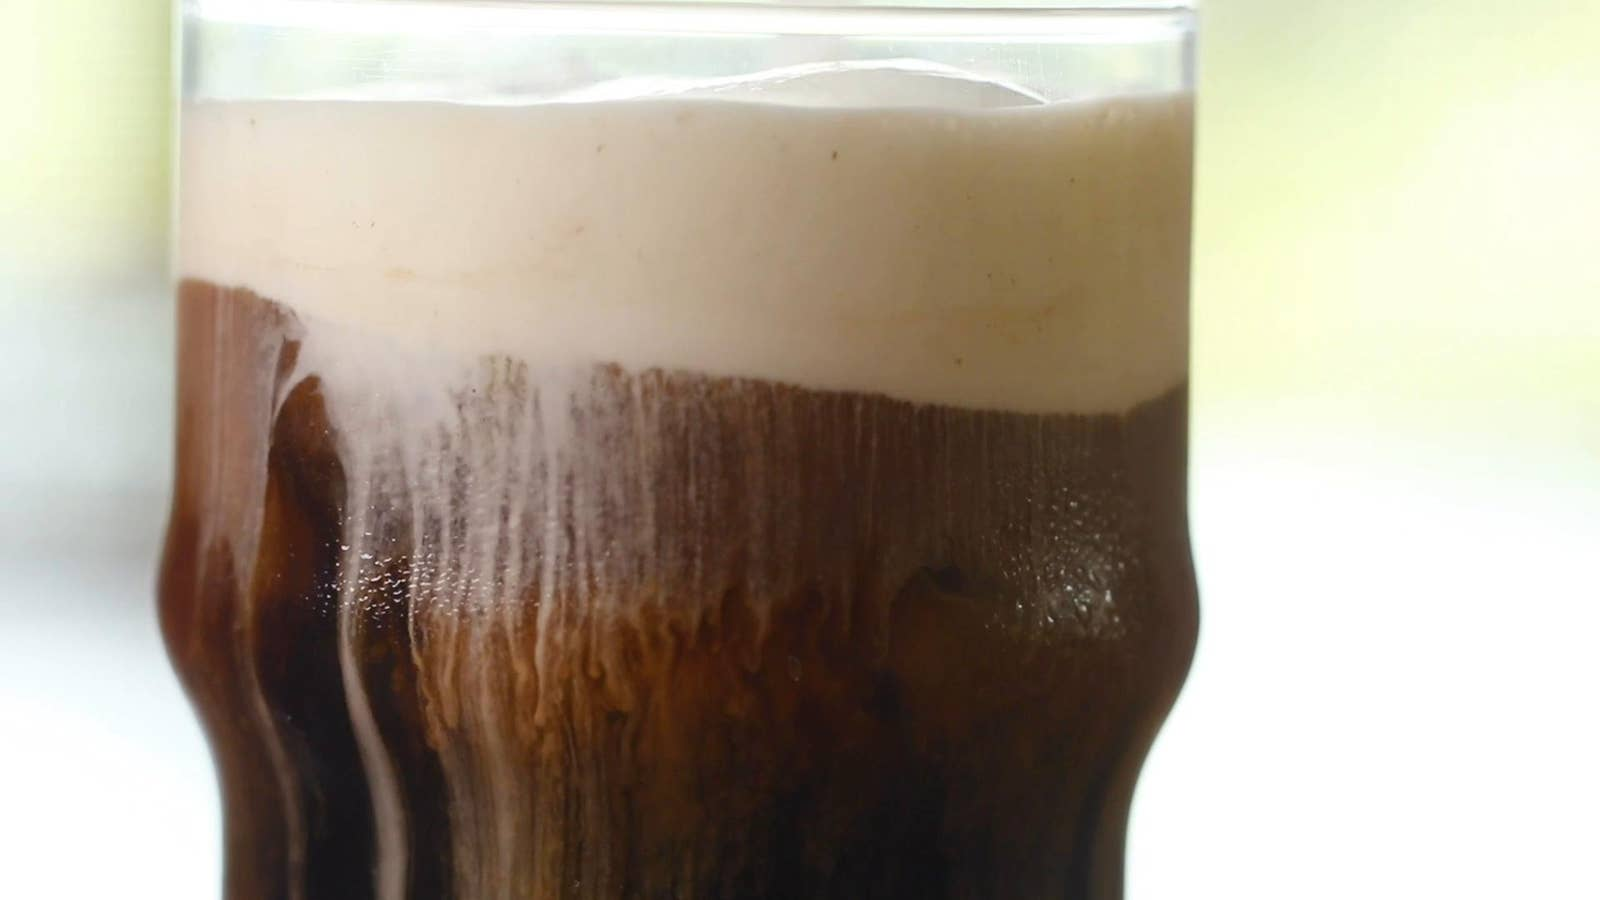 Cold Brew With Sweet And Salty Foam